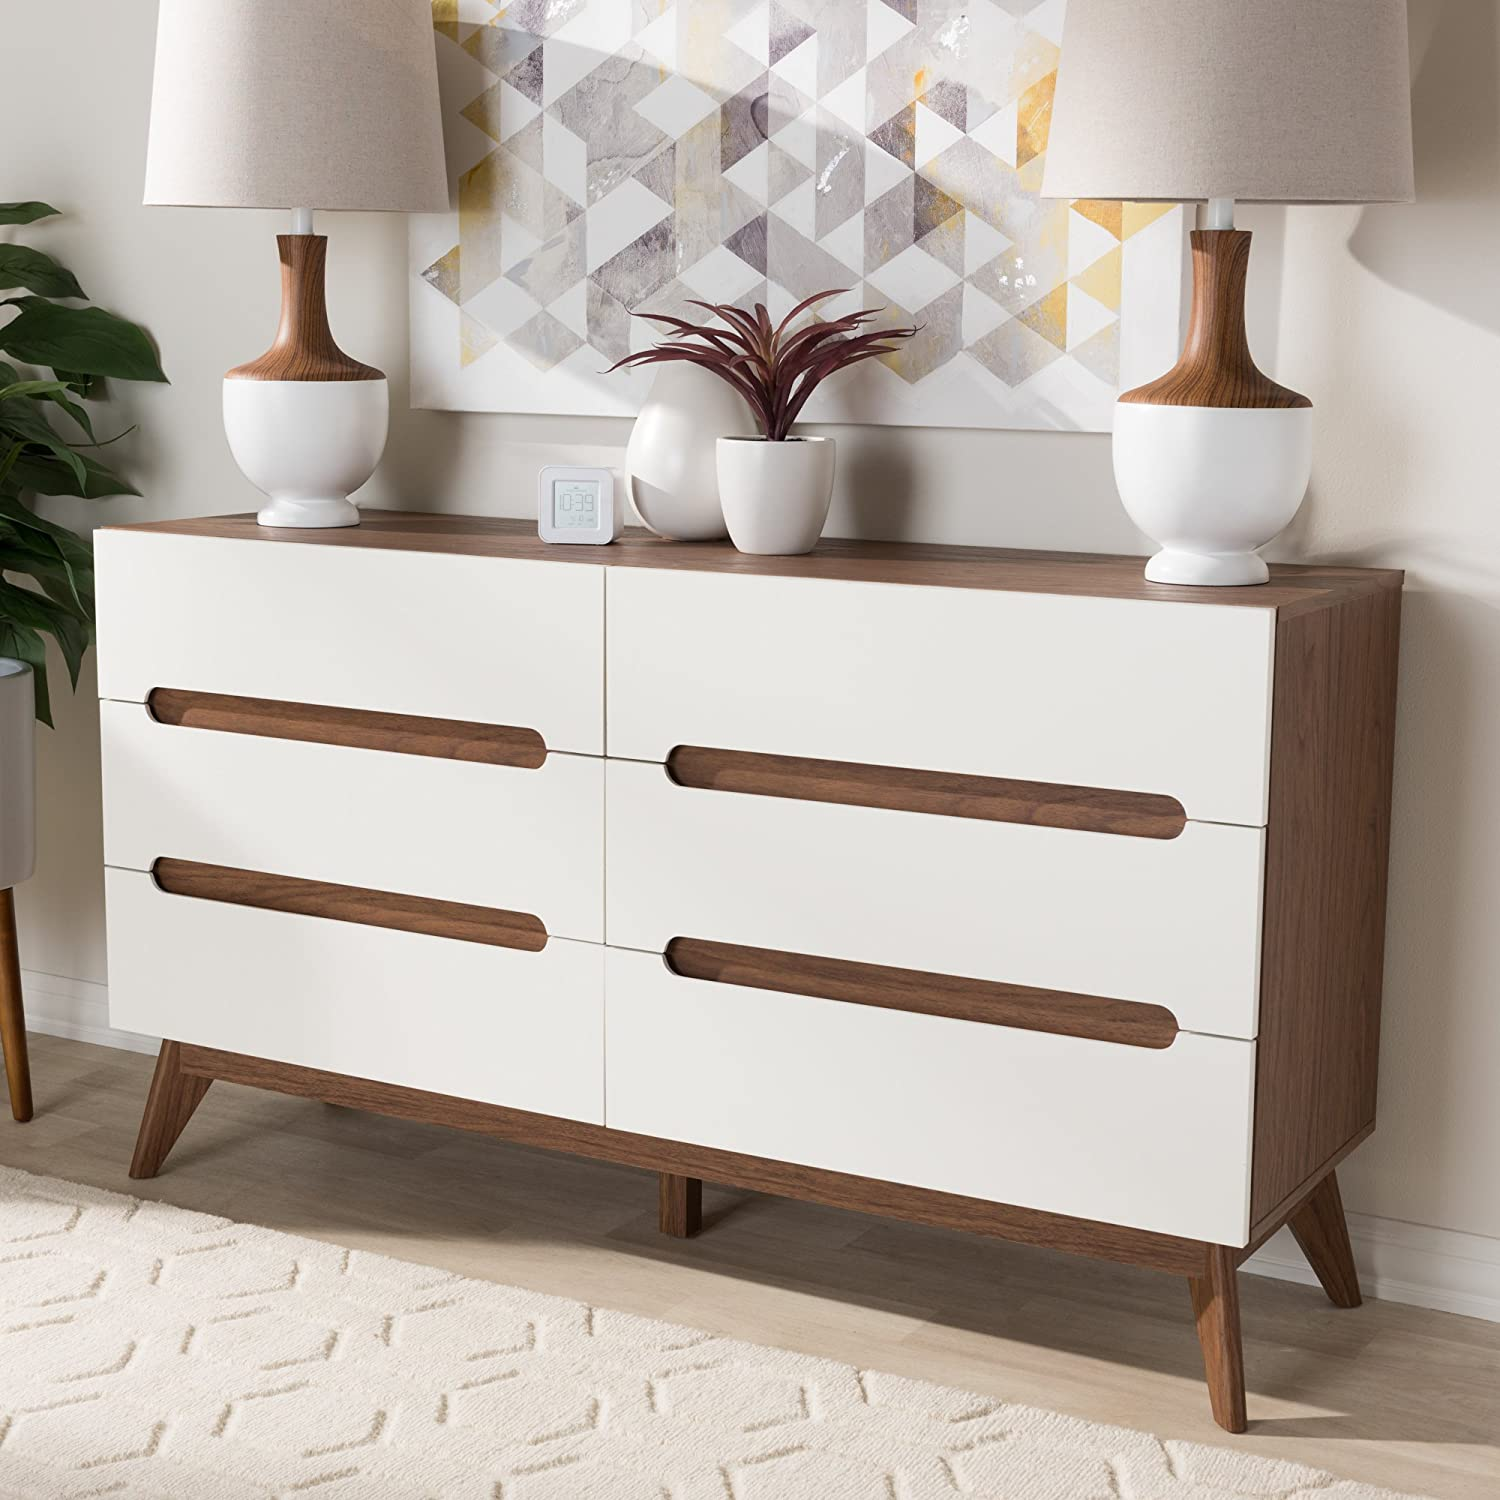 Baxton Studio Calypso 6 Drawer Double Dresser in White and Walnut